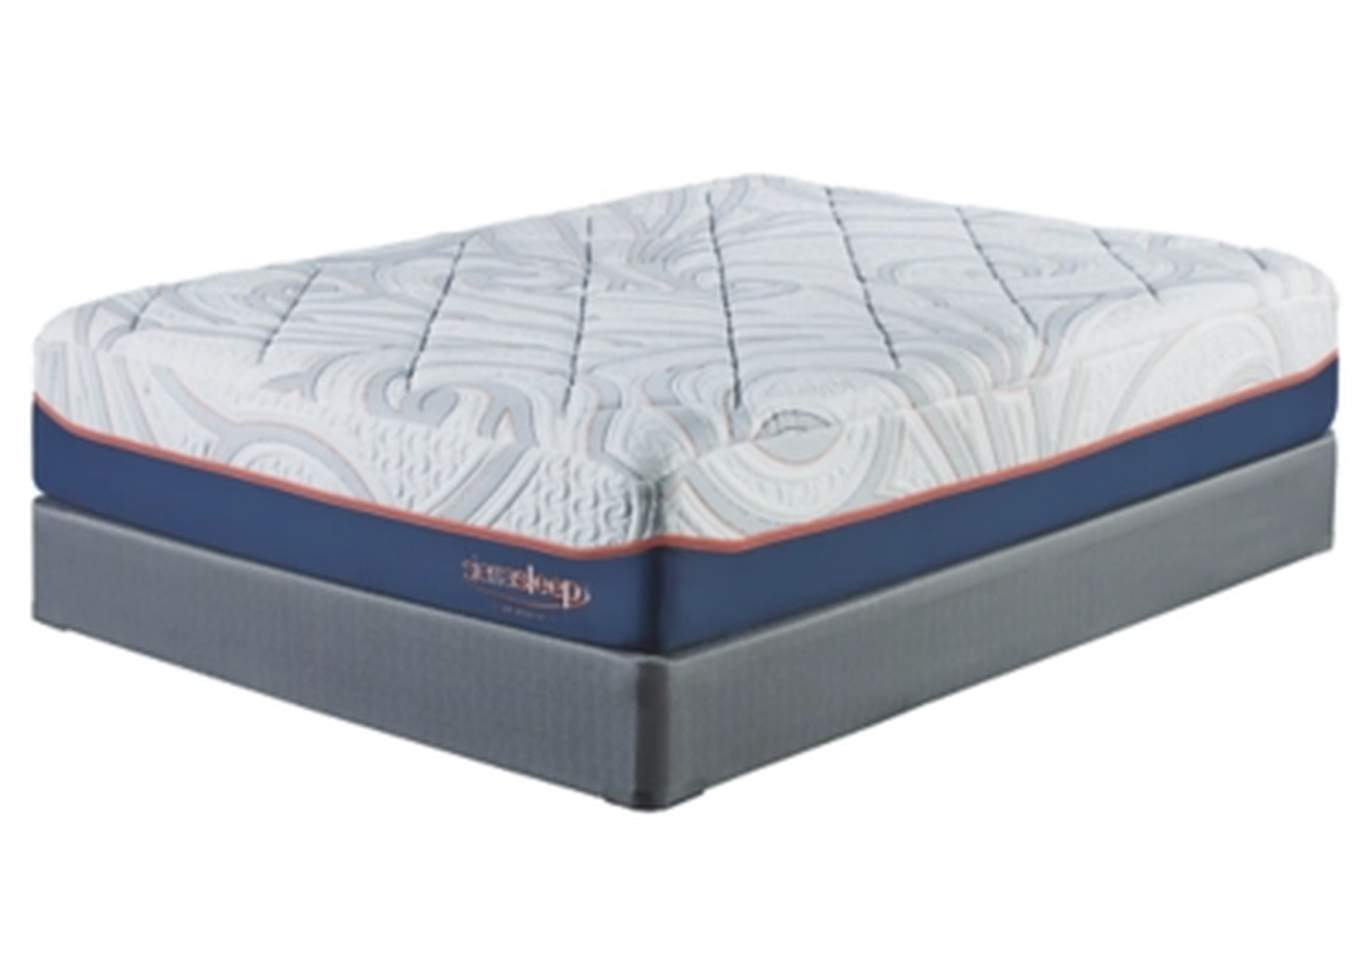 14 Inch MyGel White California King Mattress w/Foundation,Sierra Sleep by Ashley